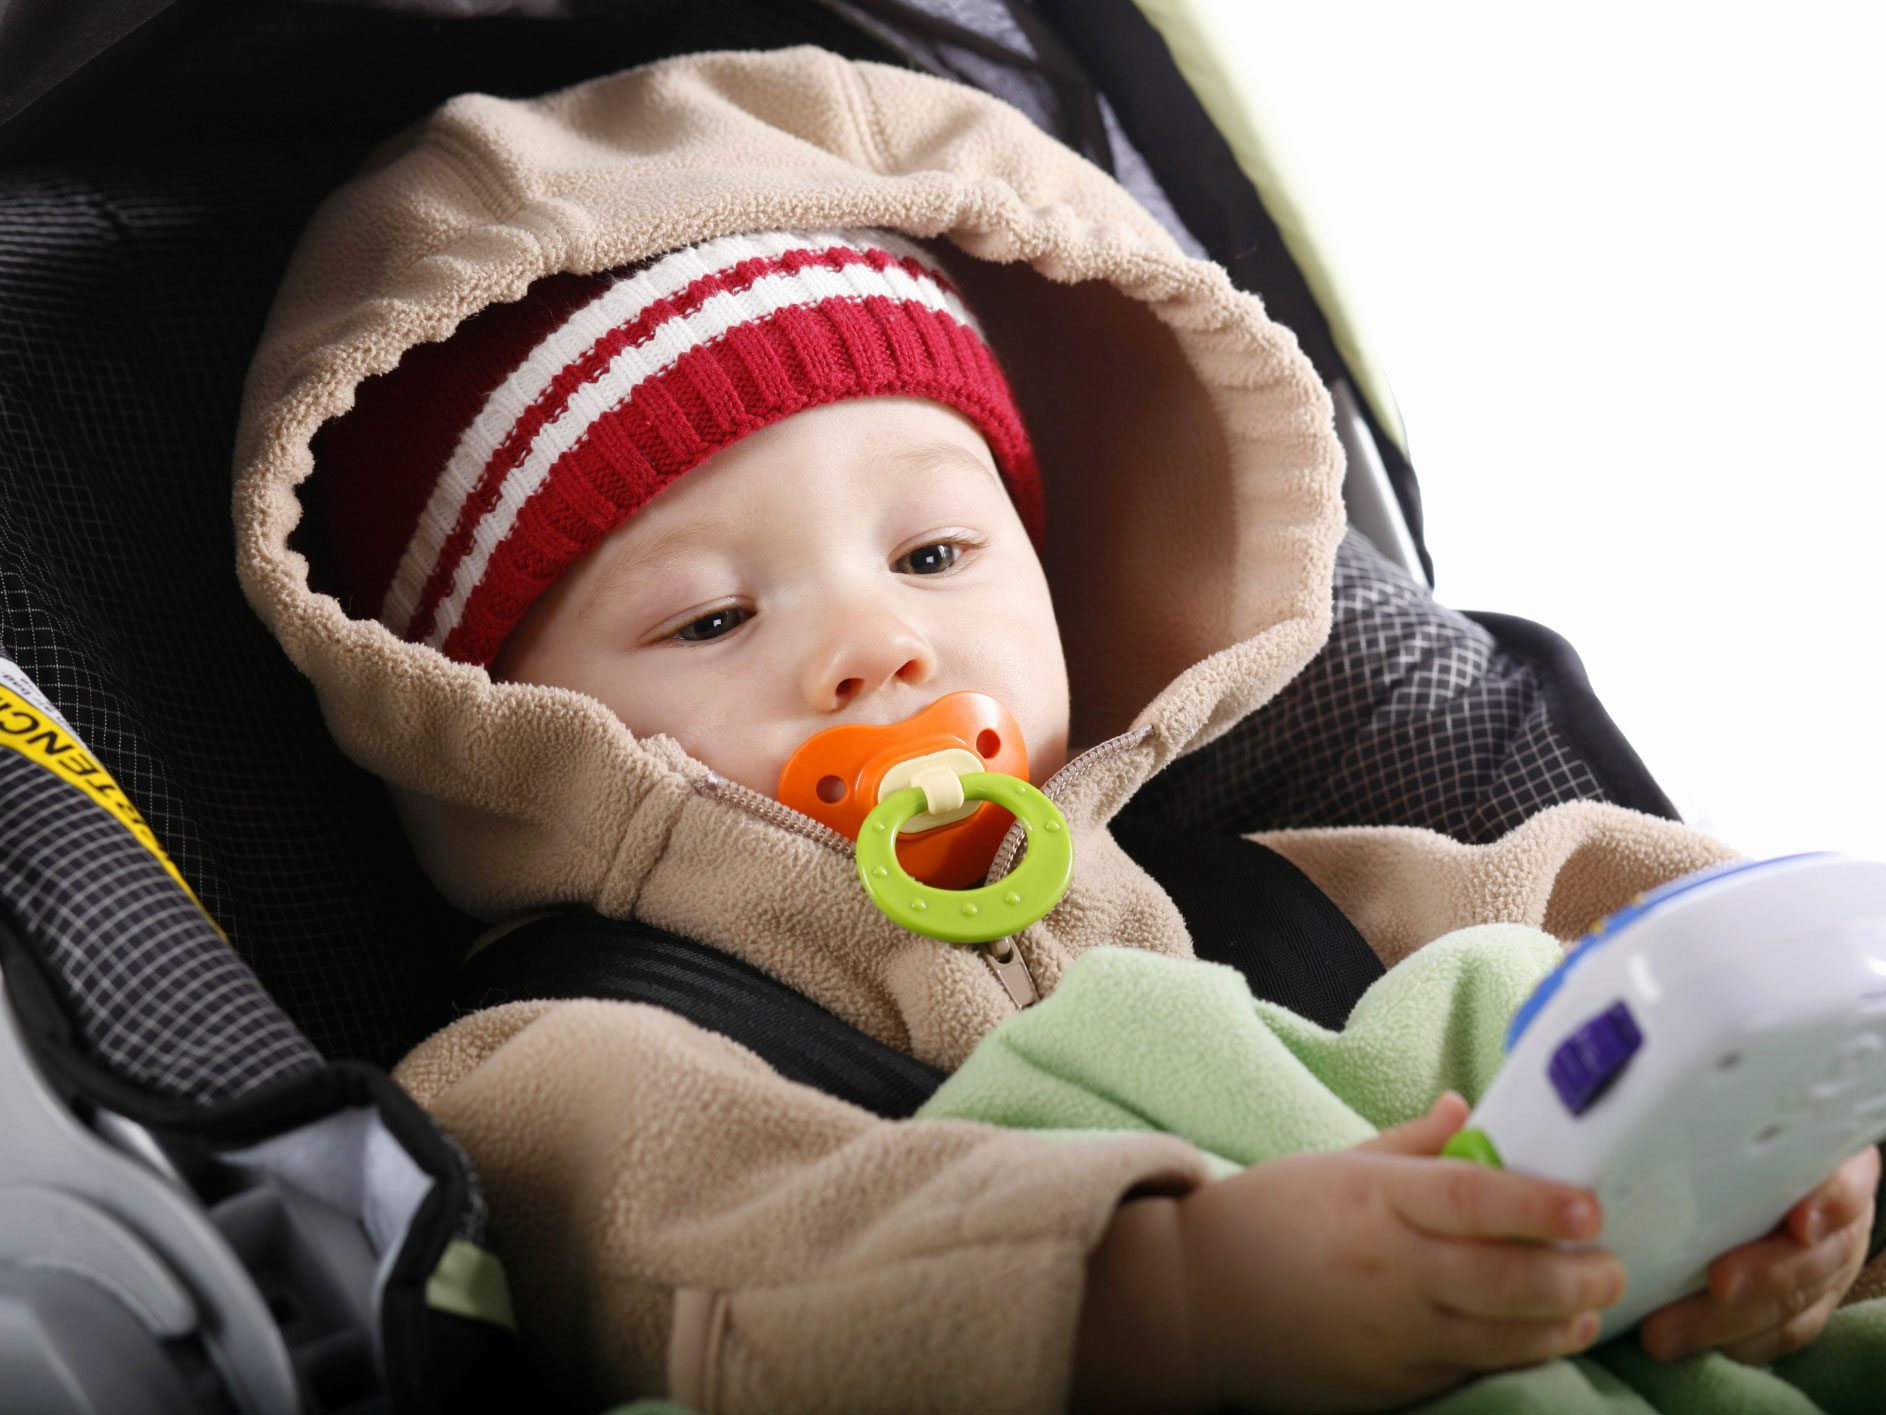 Avoid Bulky Clothing in Car Seats